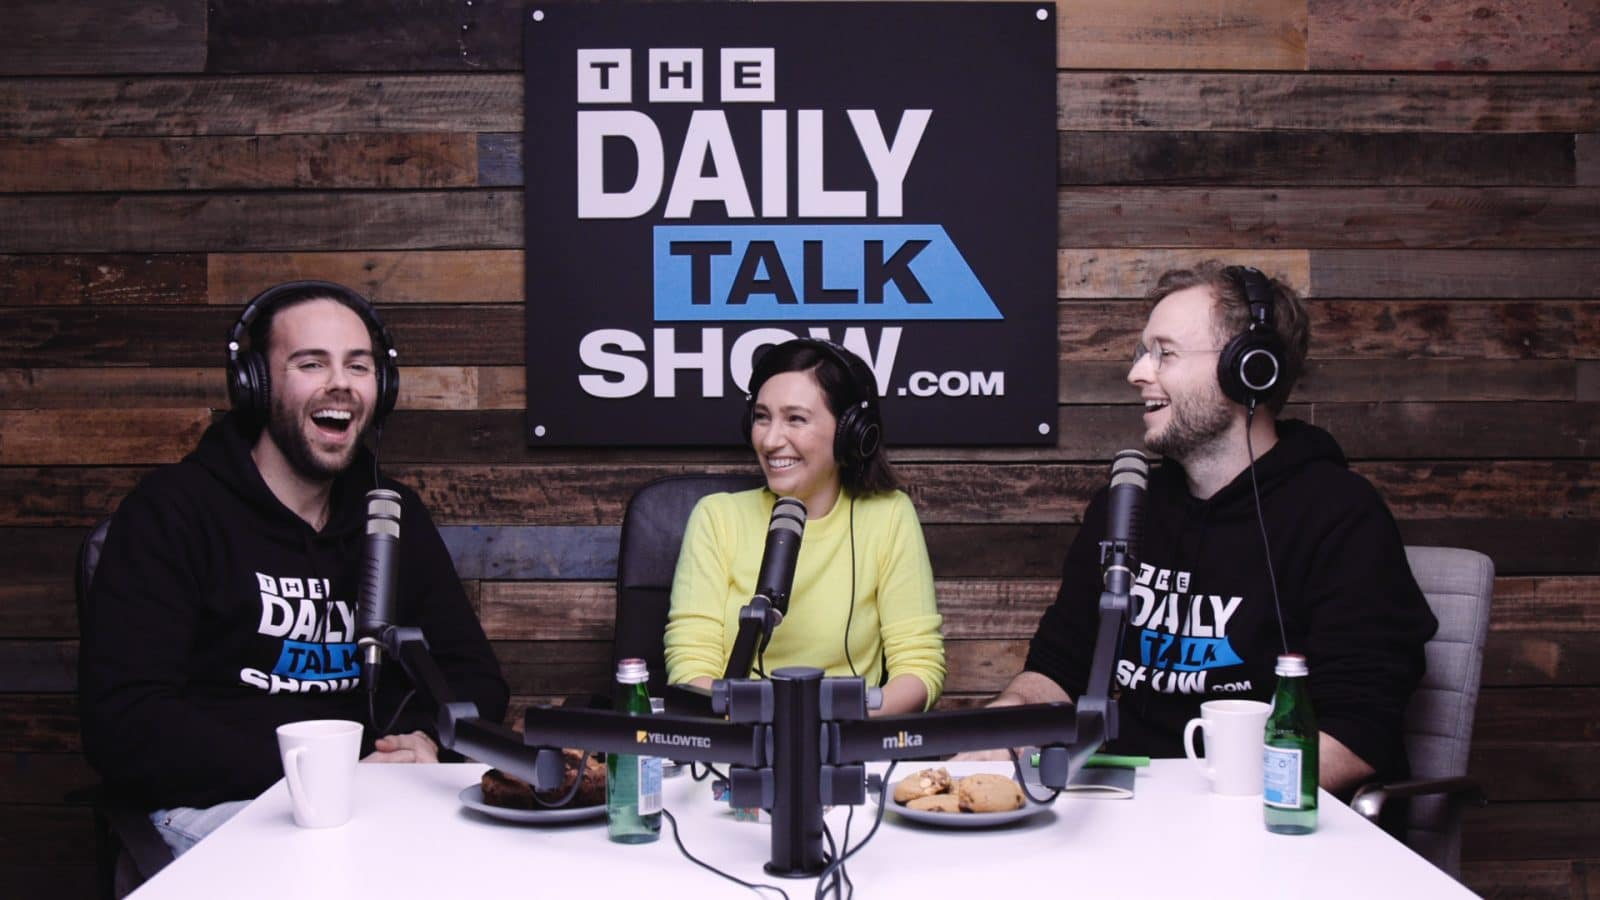 The-Daily-Talk-Show-426